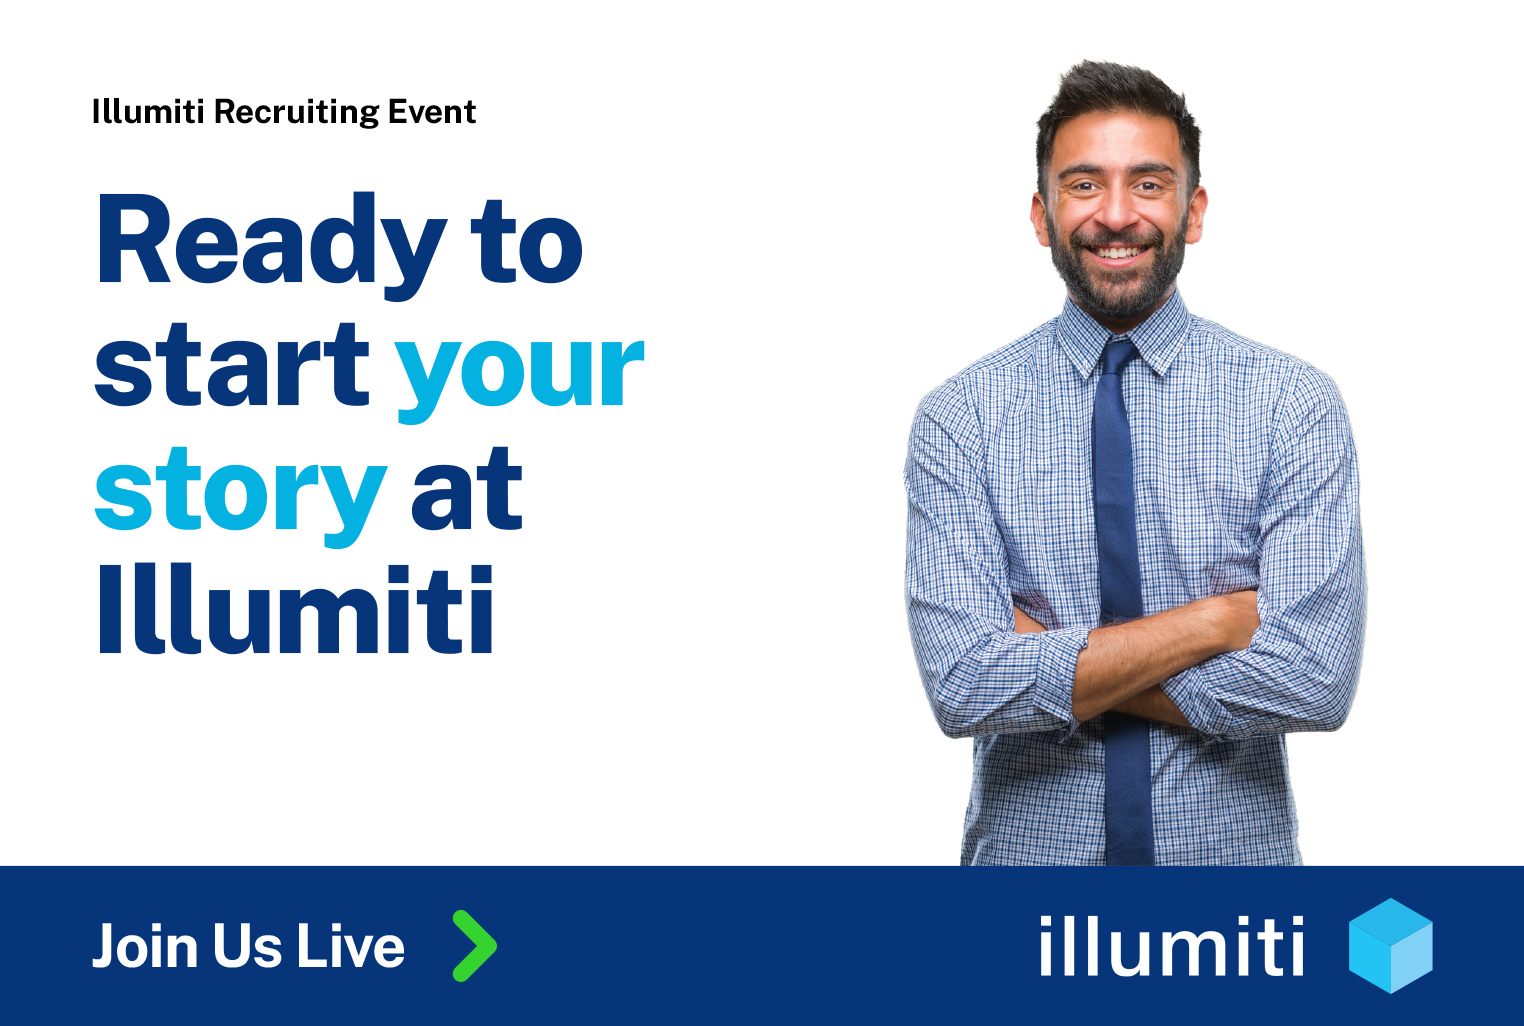 Ready to start your story at Illumiti